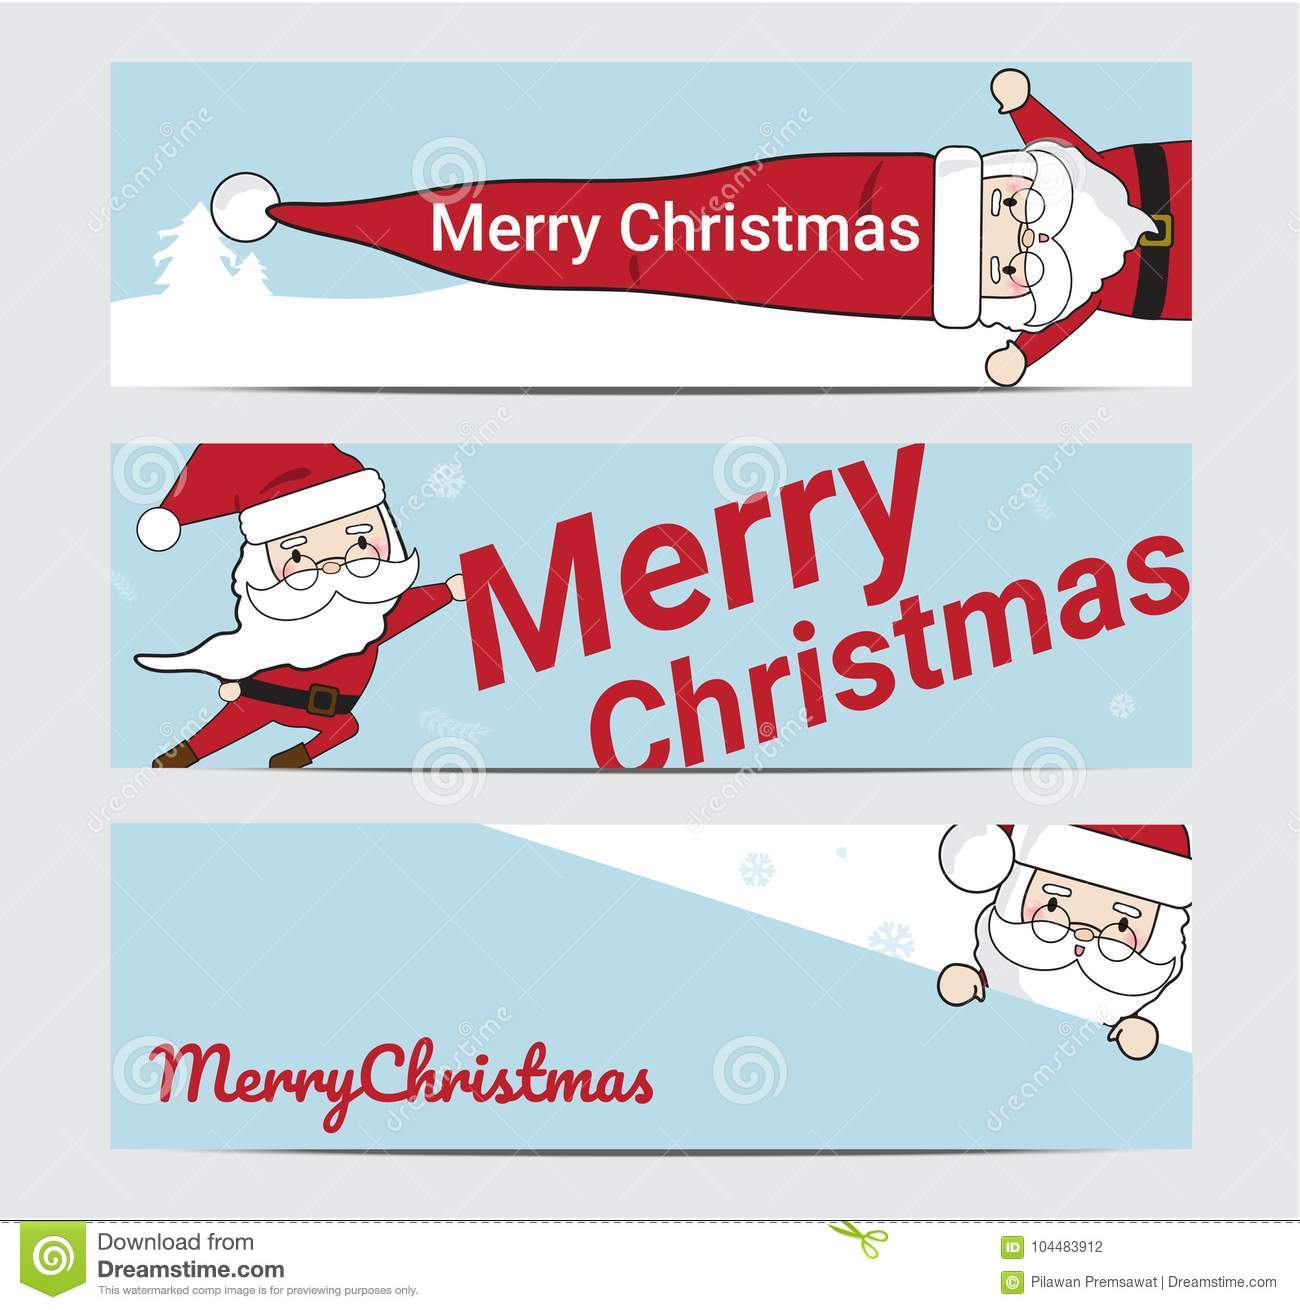 merry christmas and happy new year with santa background illustration banner